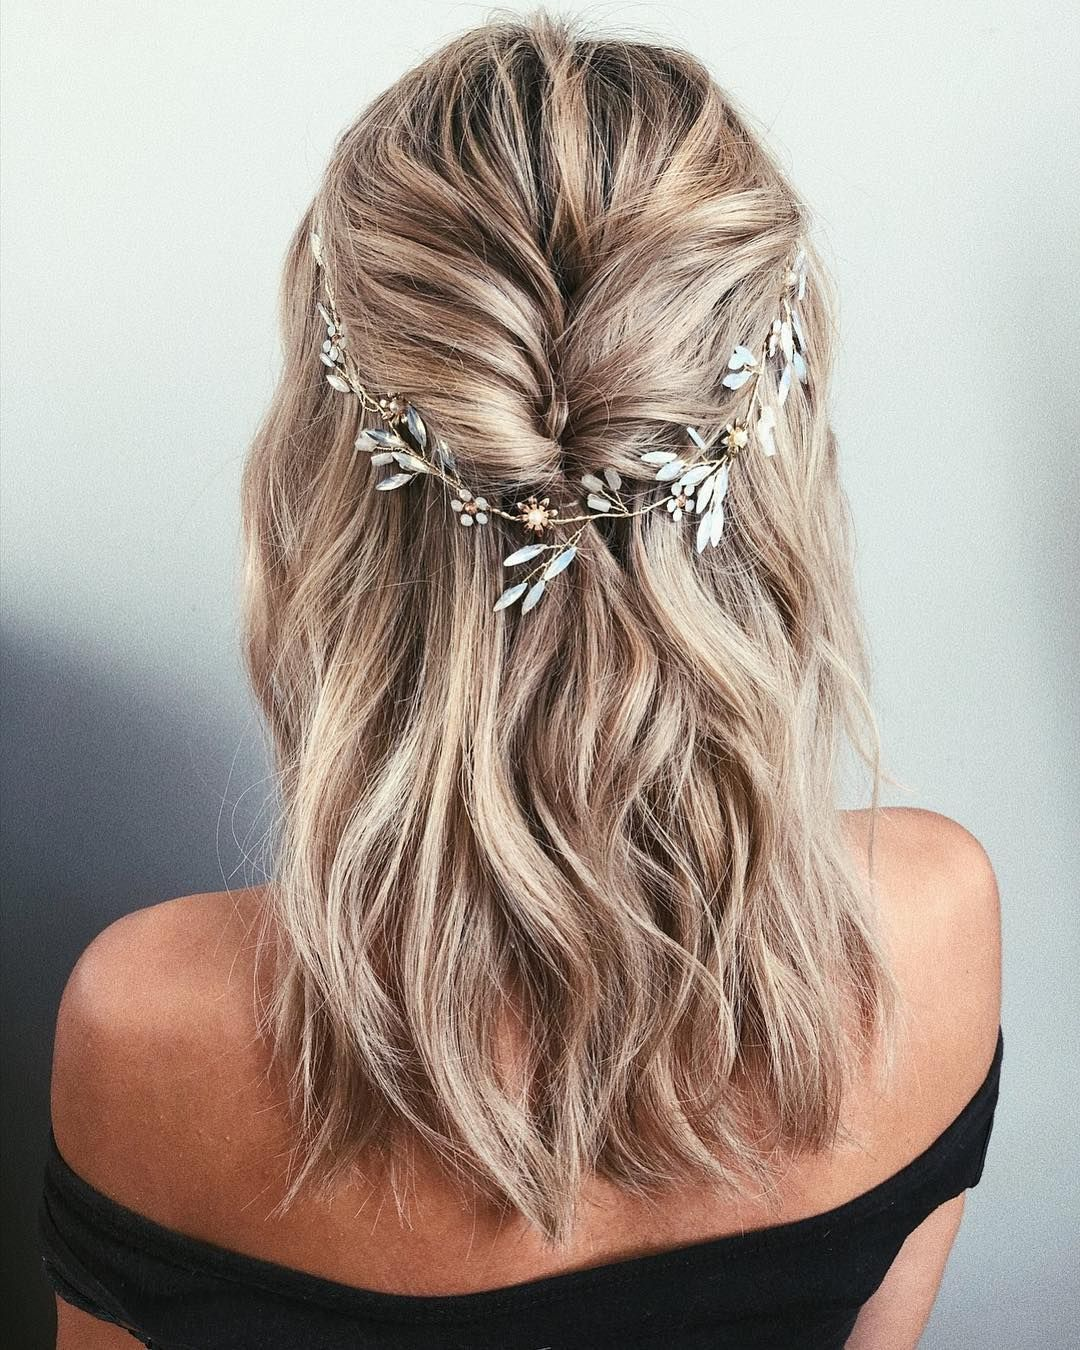 52 special occasion hairstyles for long hair | wedding ideas